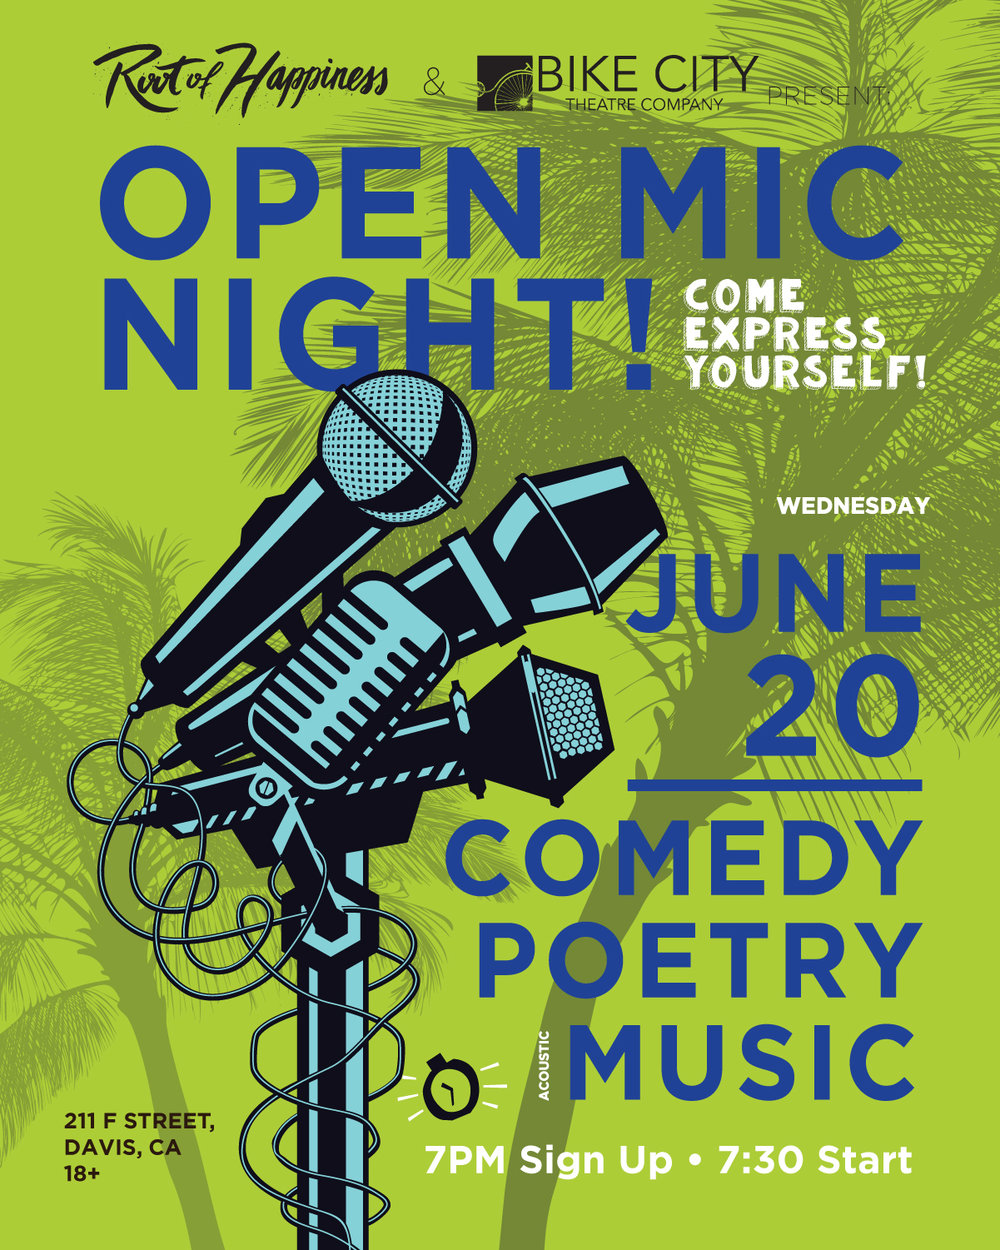 ROH Davis open mic June 20_web flyer.jpg